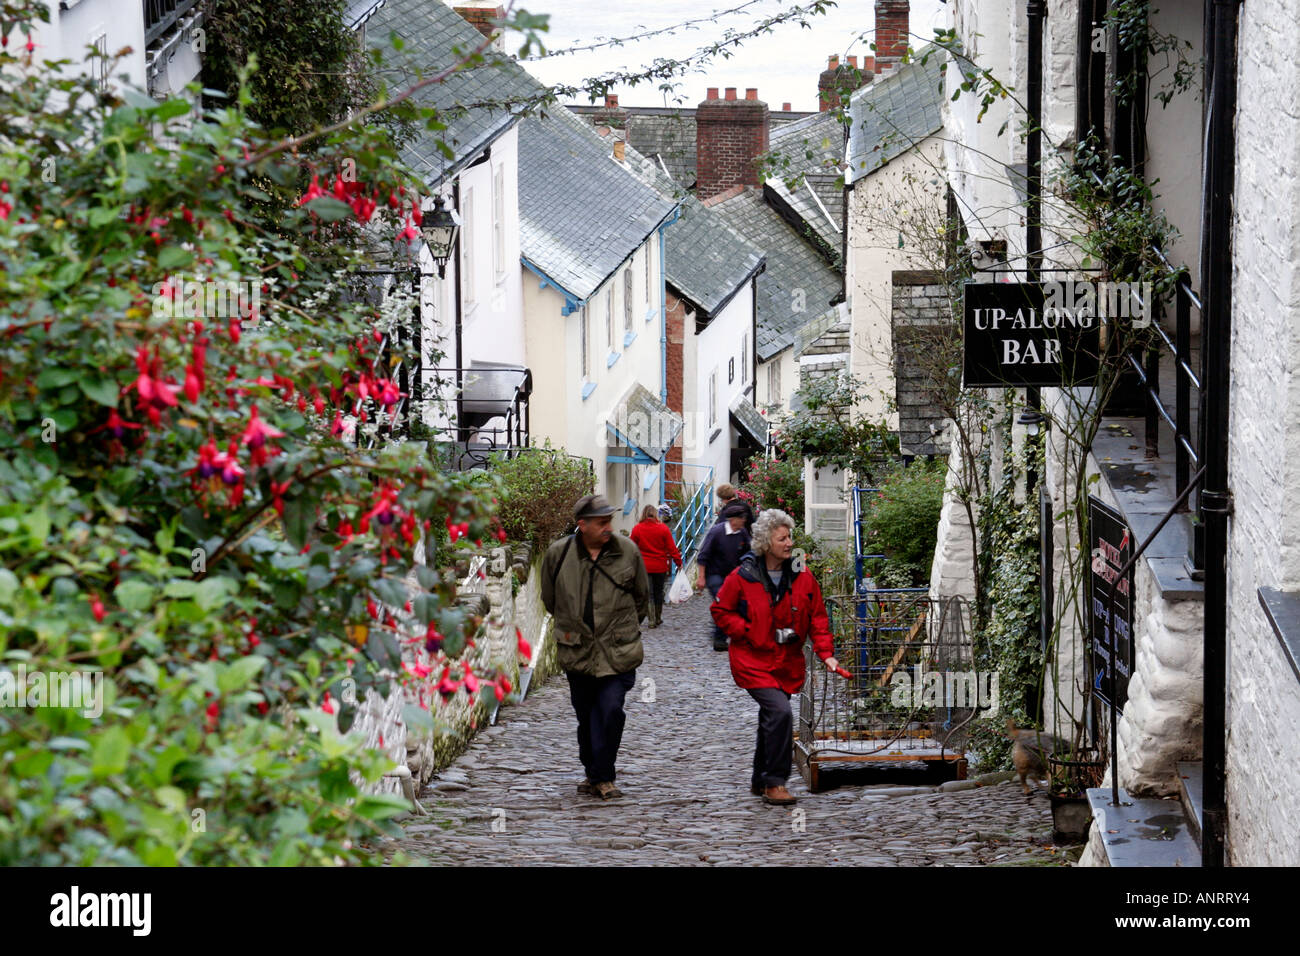 Visitors Walking Up Steep Hill In The Village Of Clovelly